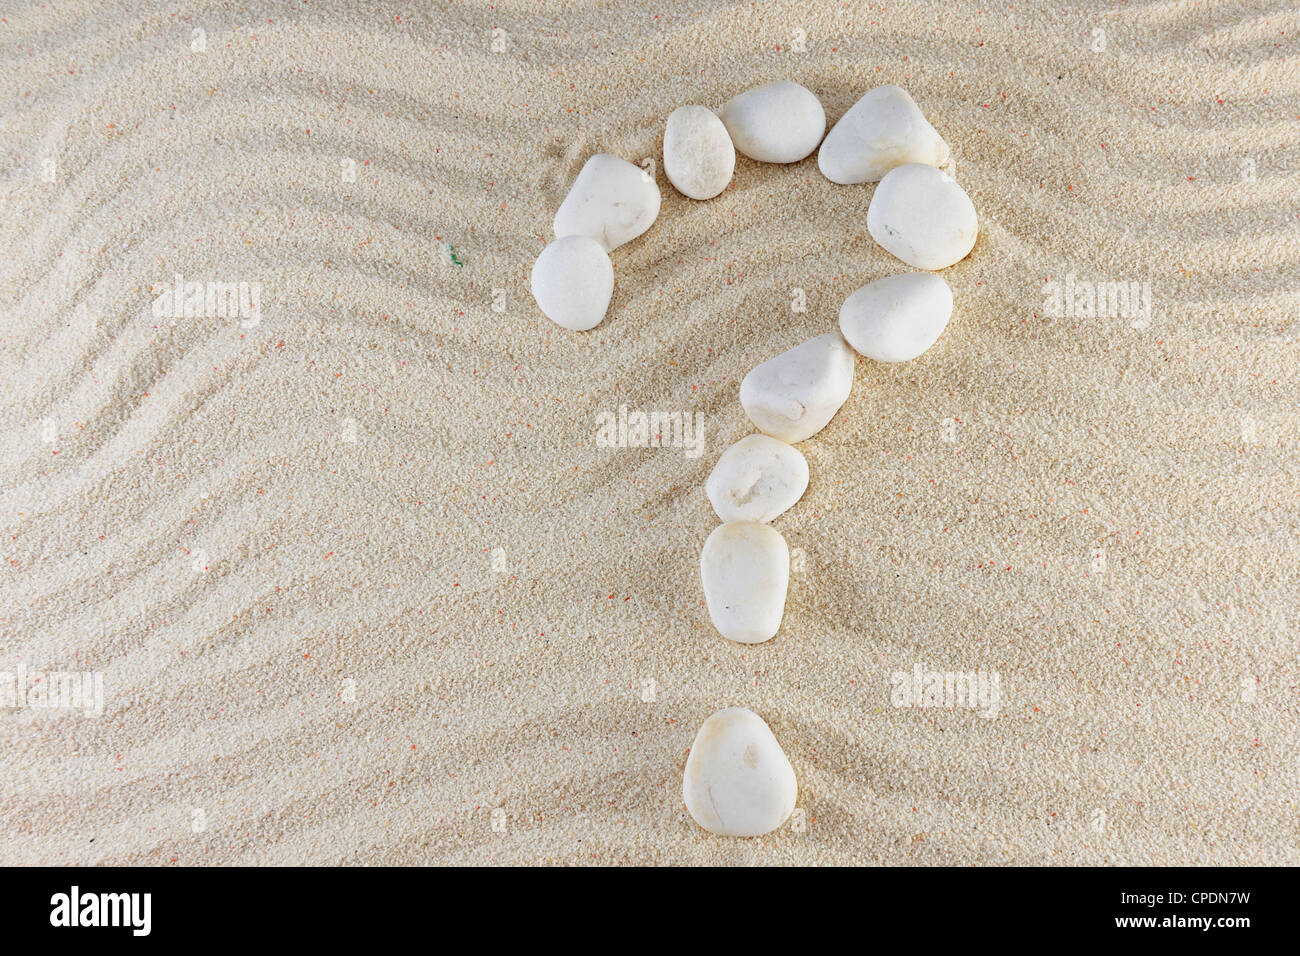 Question mark made of stones with sand as background - Stock Image